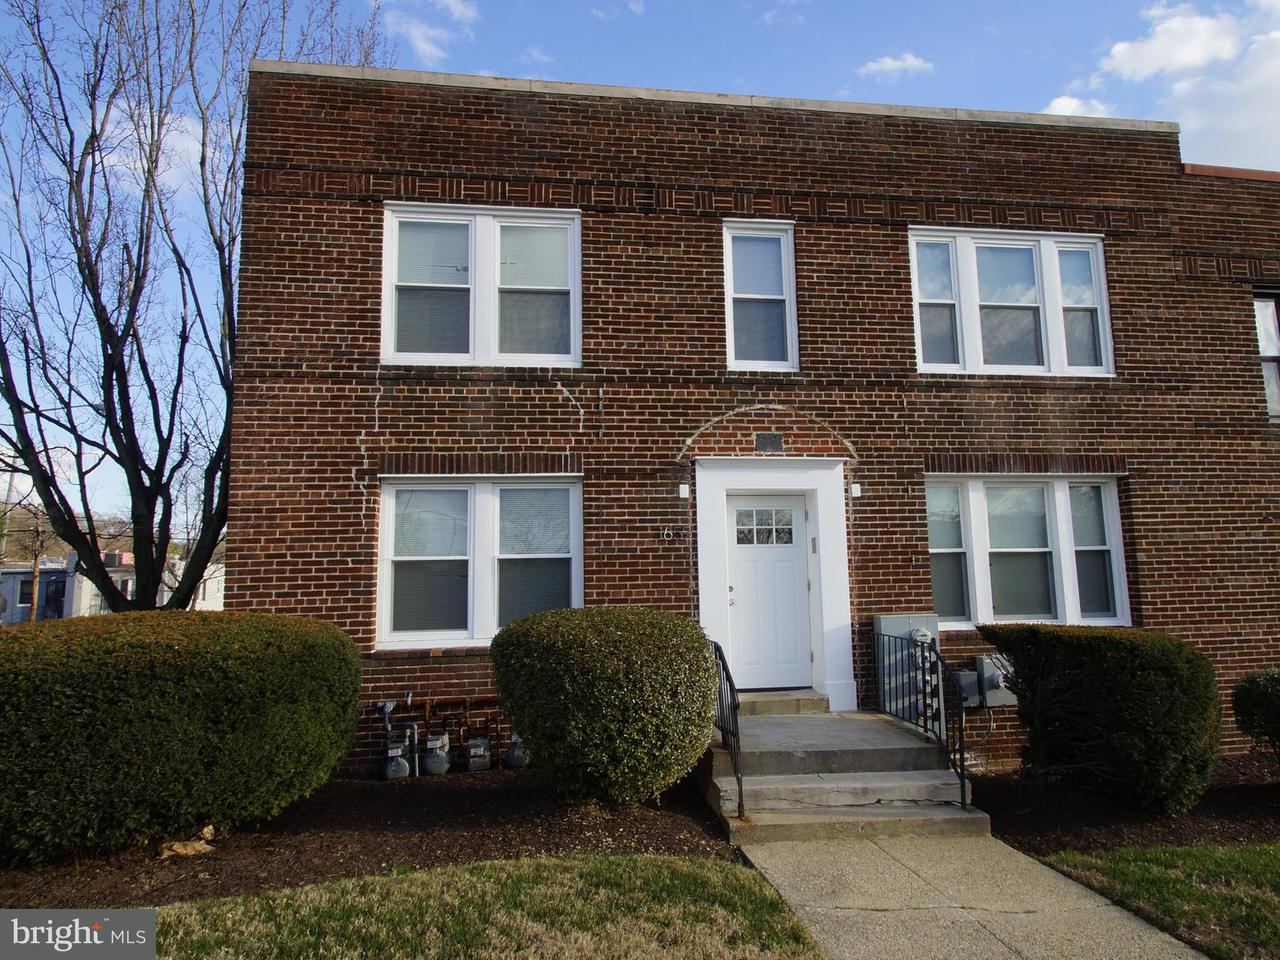 Multi-Family Home for Sale at 1659 HOLBROOK ST NE 1659 HOLBROOK ST NE Washington, District Of Columbia 20002 United States